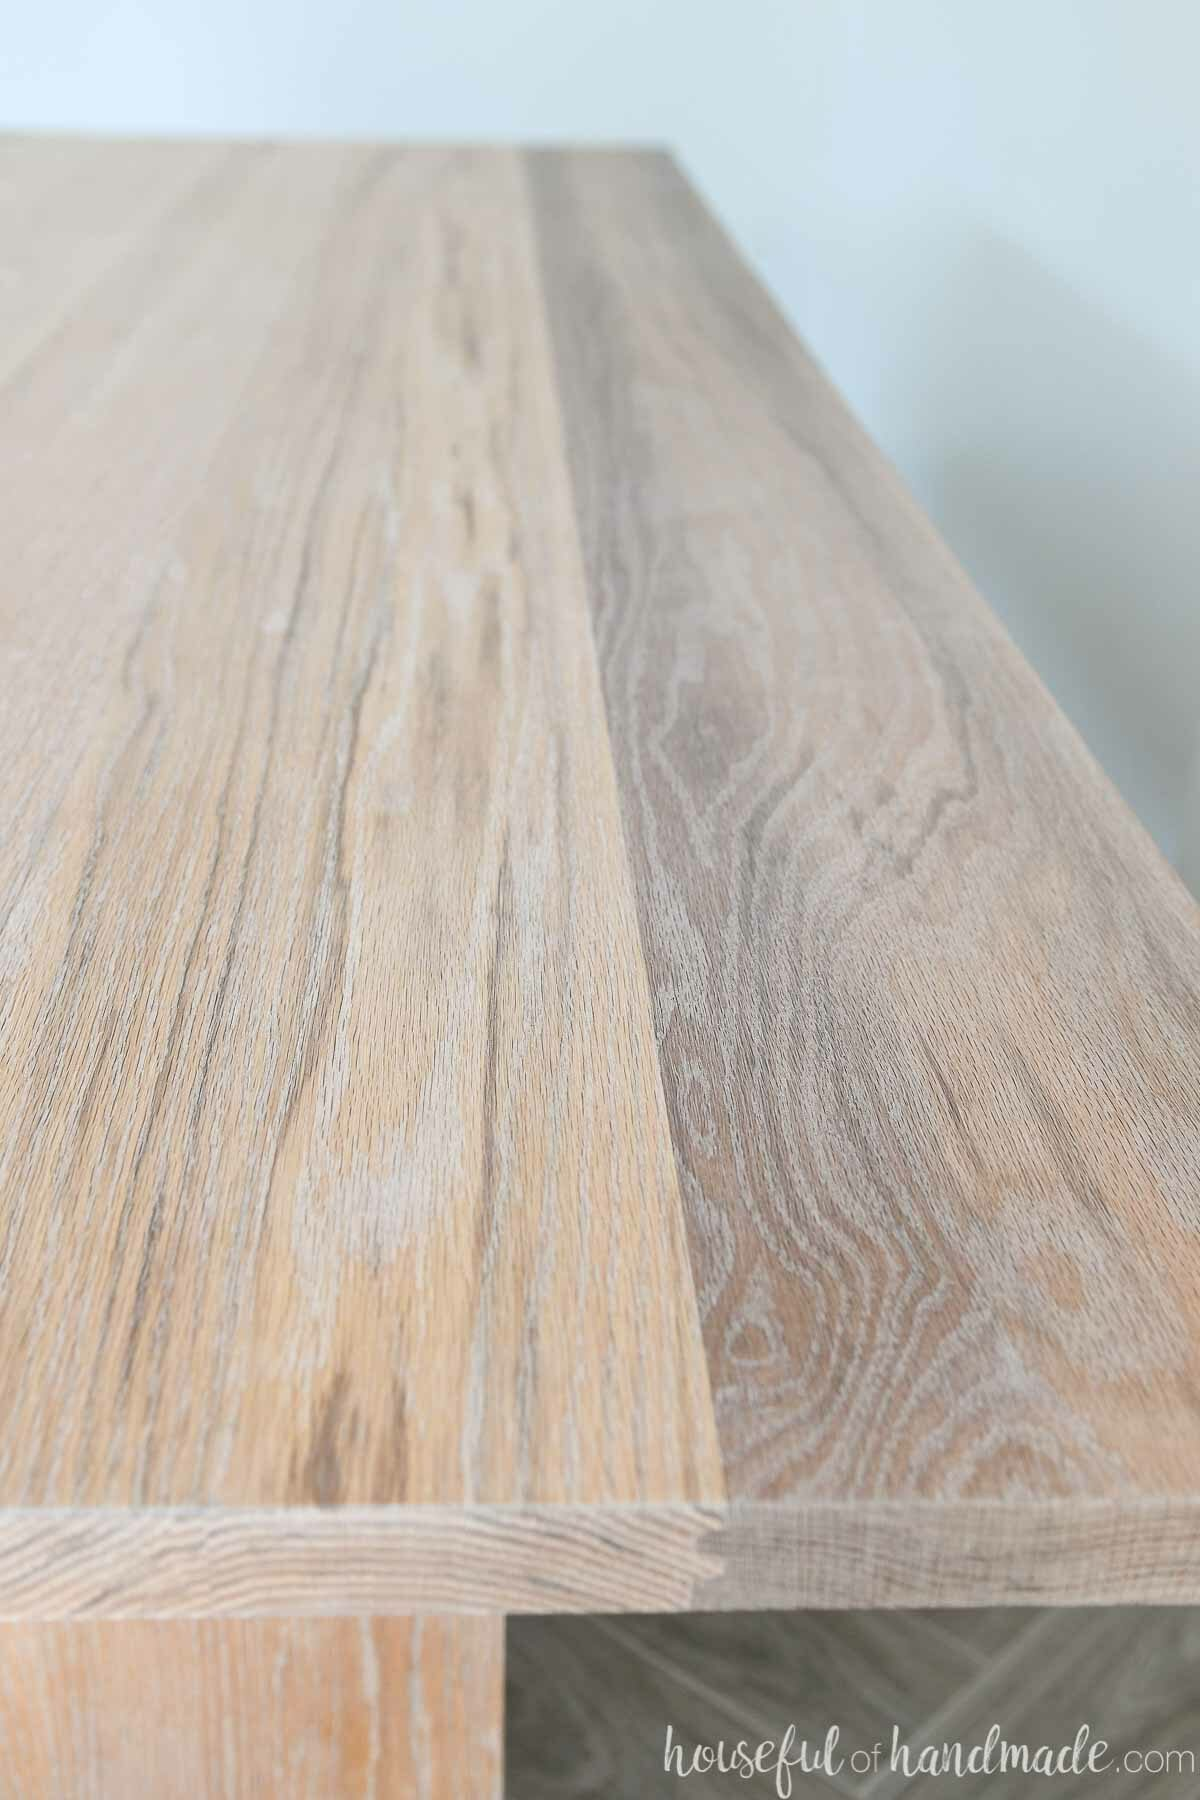 Close up of the oak grain with the Pickled White TrueTone color from Waterlox applied to it.